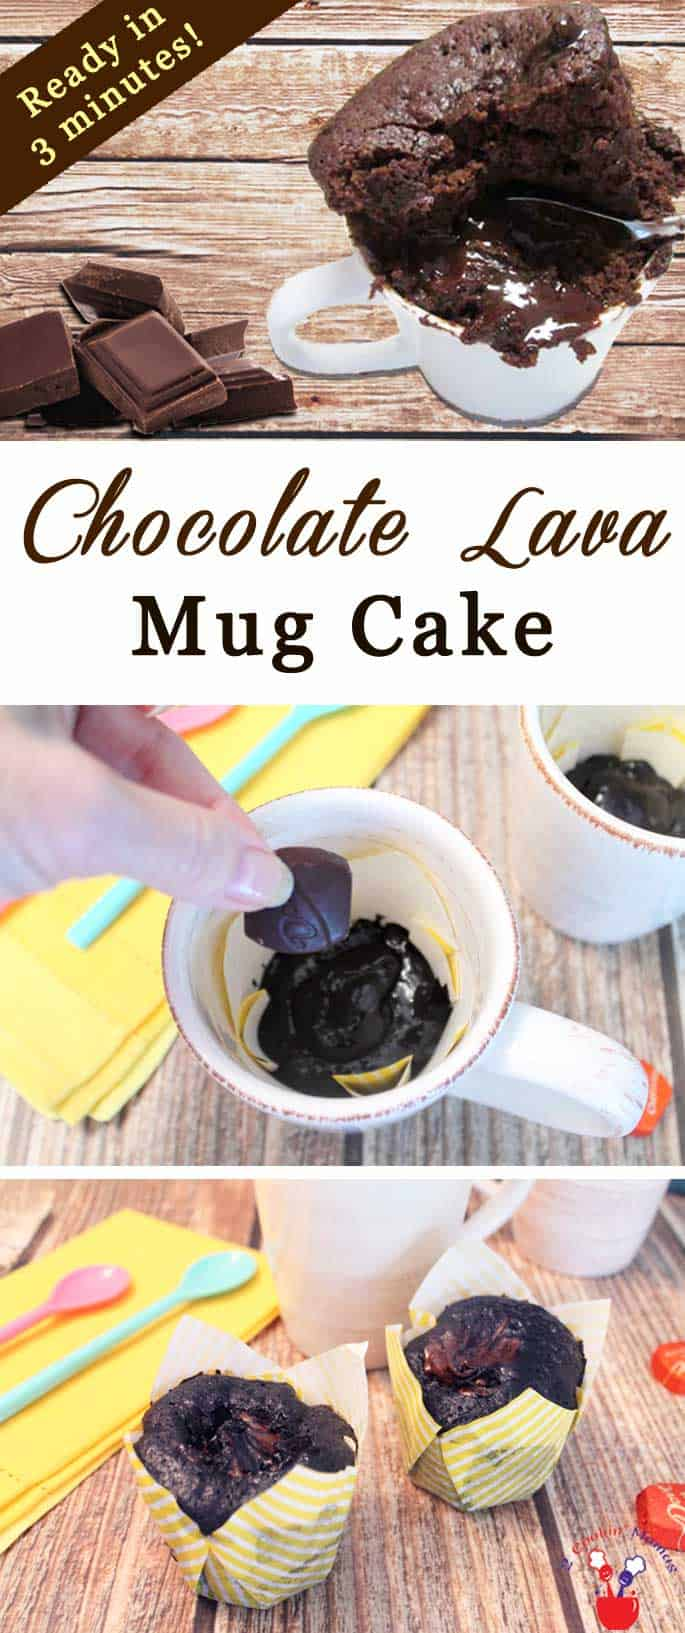 An easy mug cake to make for those that love chocolate! Chocolate cake, a liquid chocolate center, pour in a mug, pop in the microwave, ready in a minute! #lavacake #mugcake #chocolatecake #quickandeasydessert #dessert #recipe